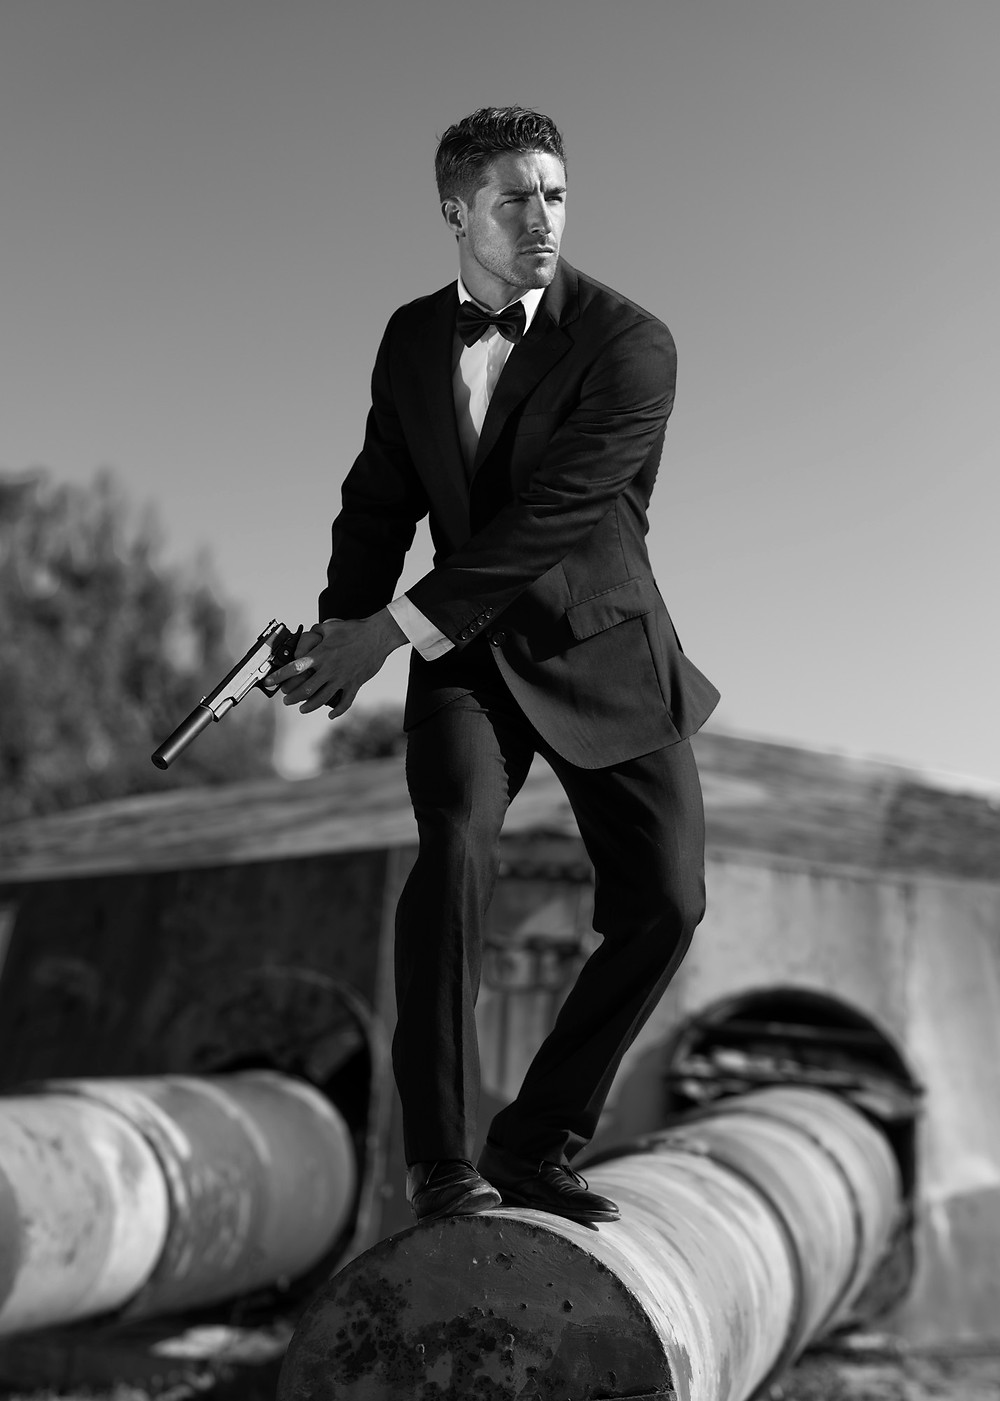 James Bond inspiration. Portrait photography.